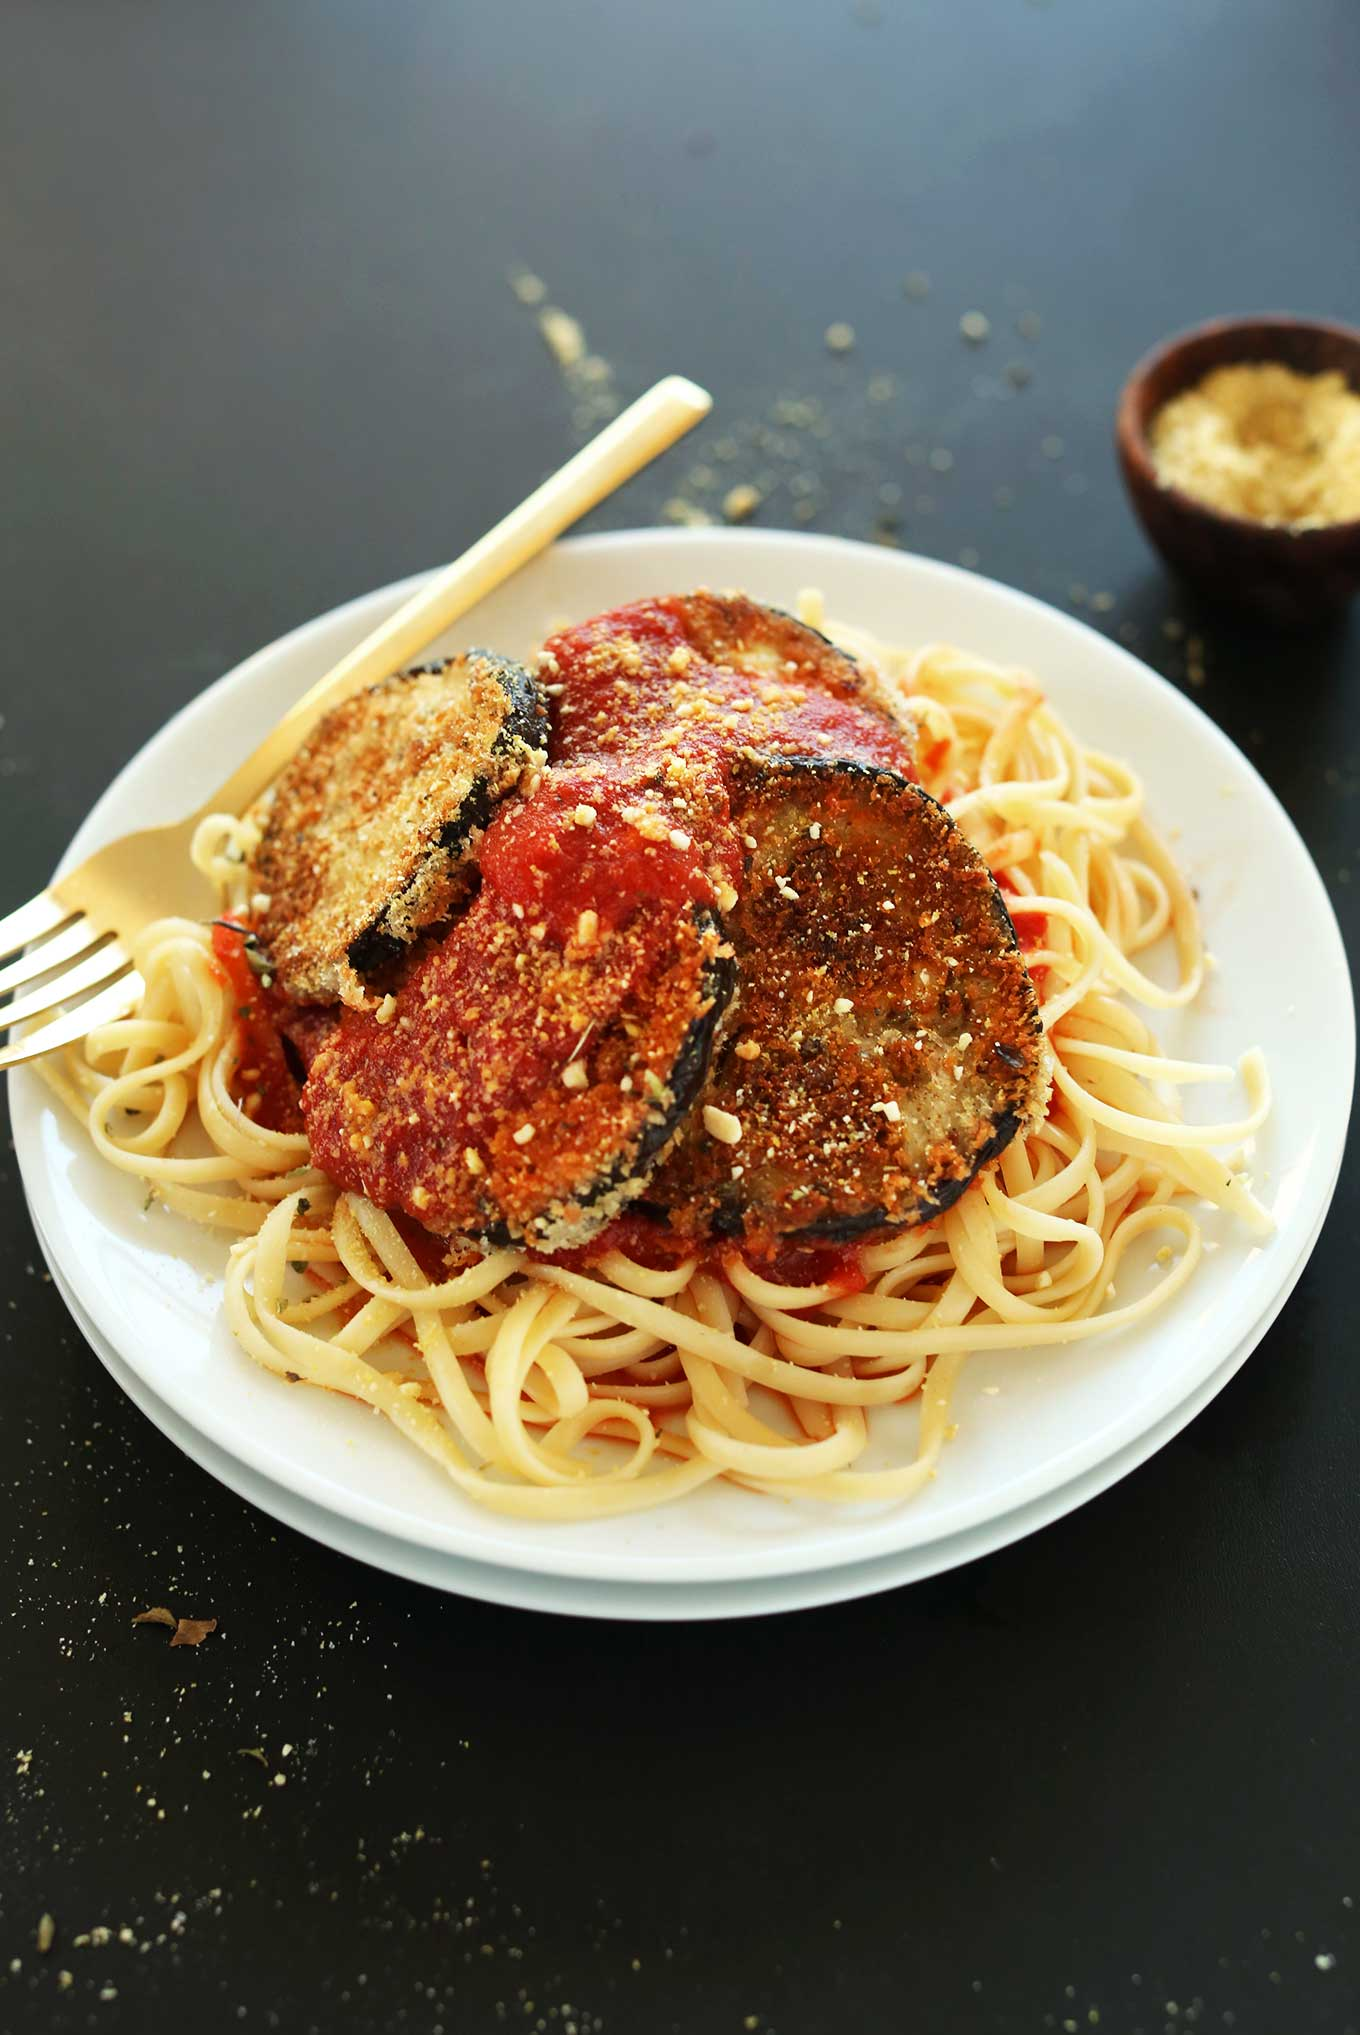 Plate loaded with noodles, marinara, and vegan eggplant parmesan